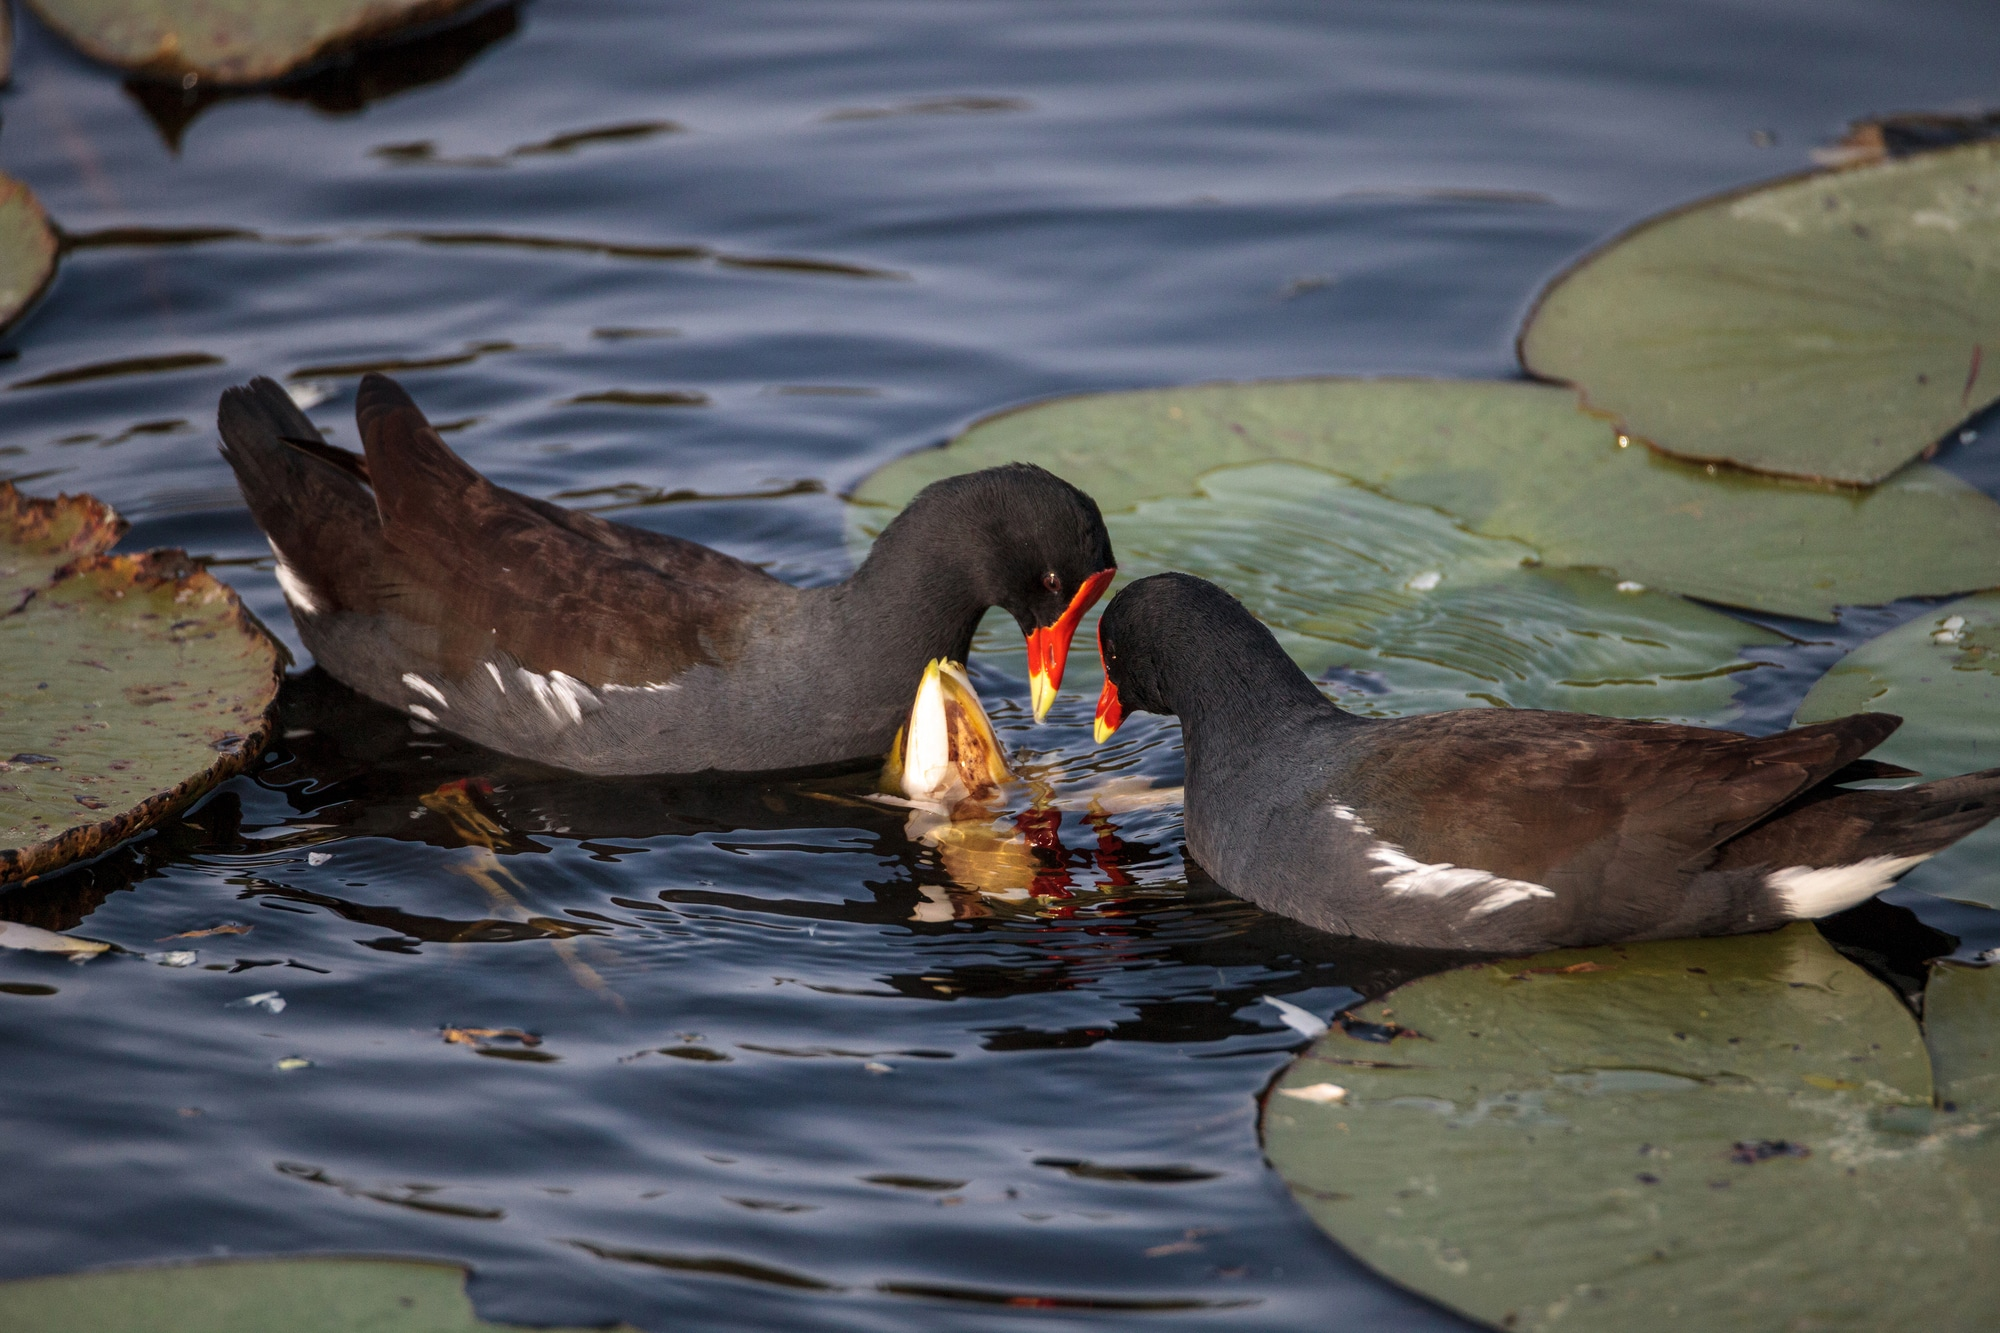 Common moorhen bird Gallinula chloropus forages for food in a